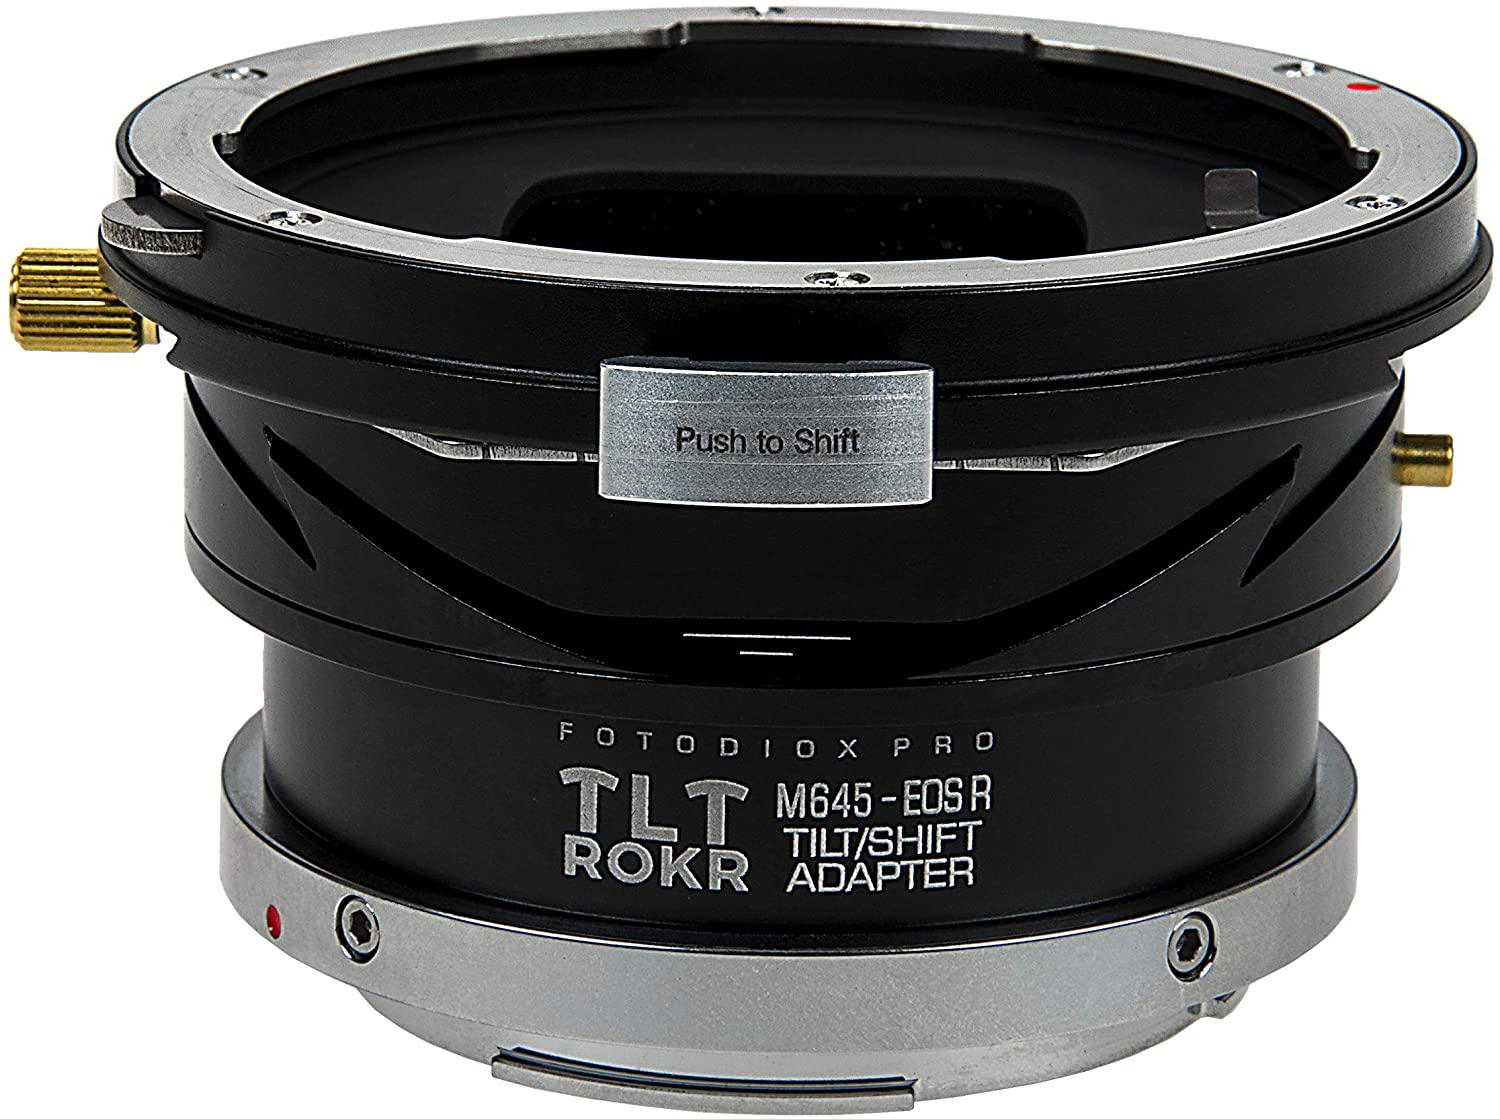 Fotodiox Pro TLT ROKR - Tilt/Shift Lens Mount Adapter Compatible with Mamiya 645 (M645) Mount Lenses to Canon RF Mount Mirrorless Camera Body